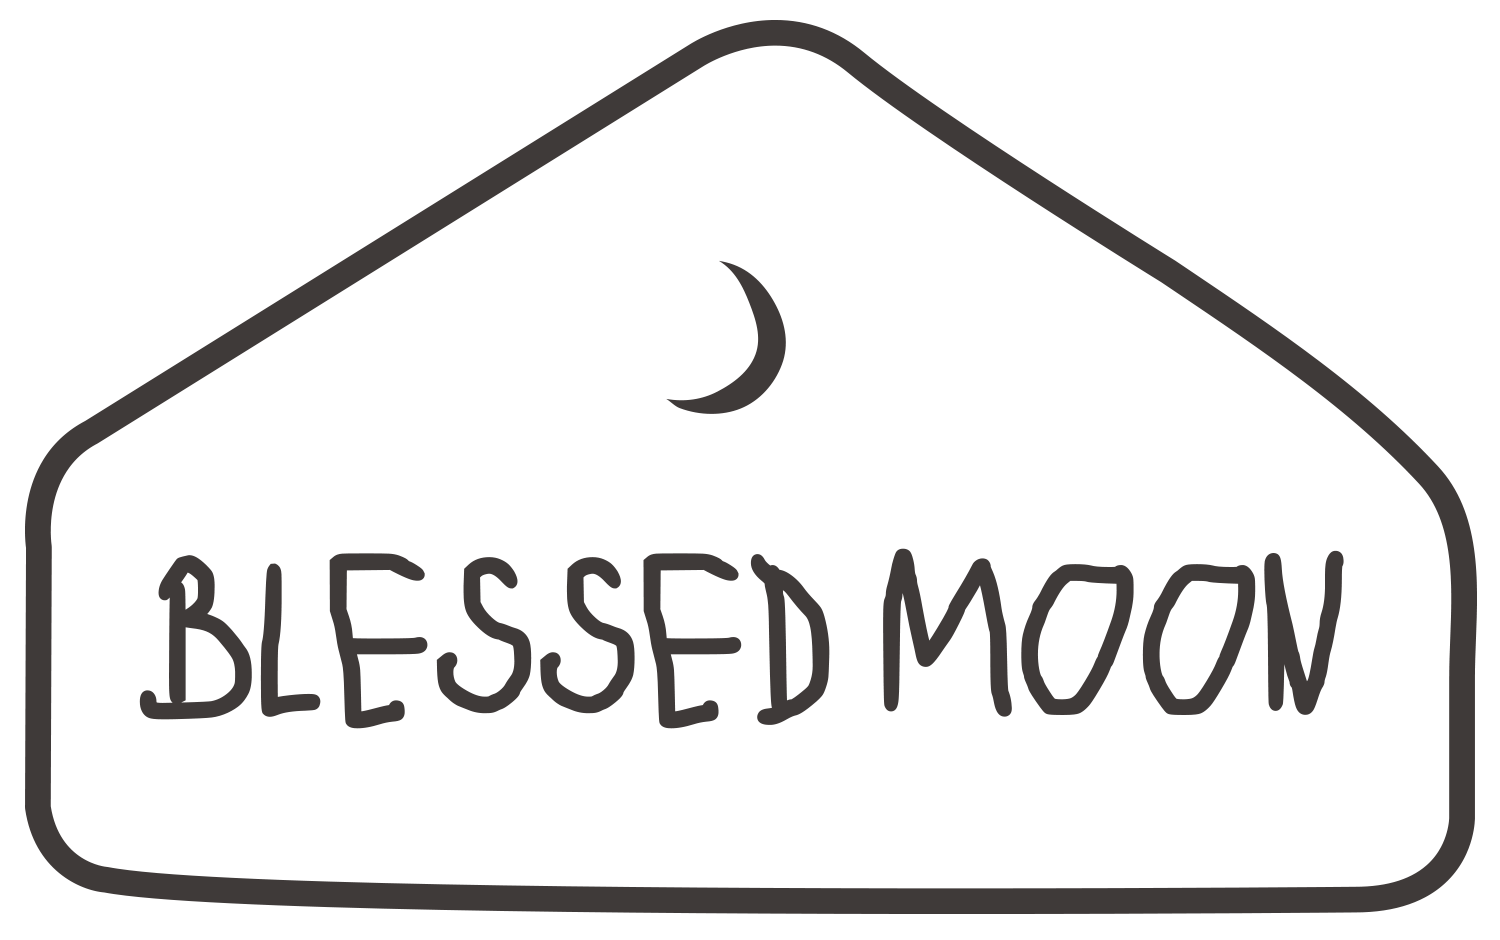 The Blessed Moon